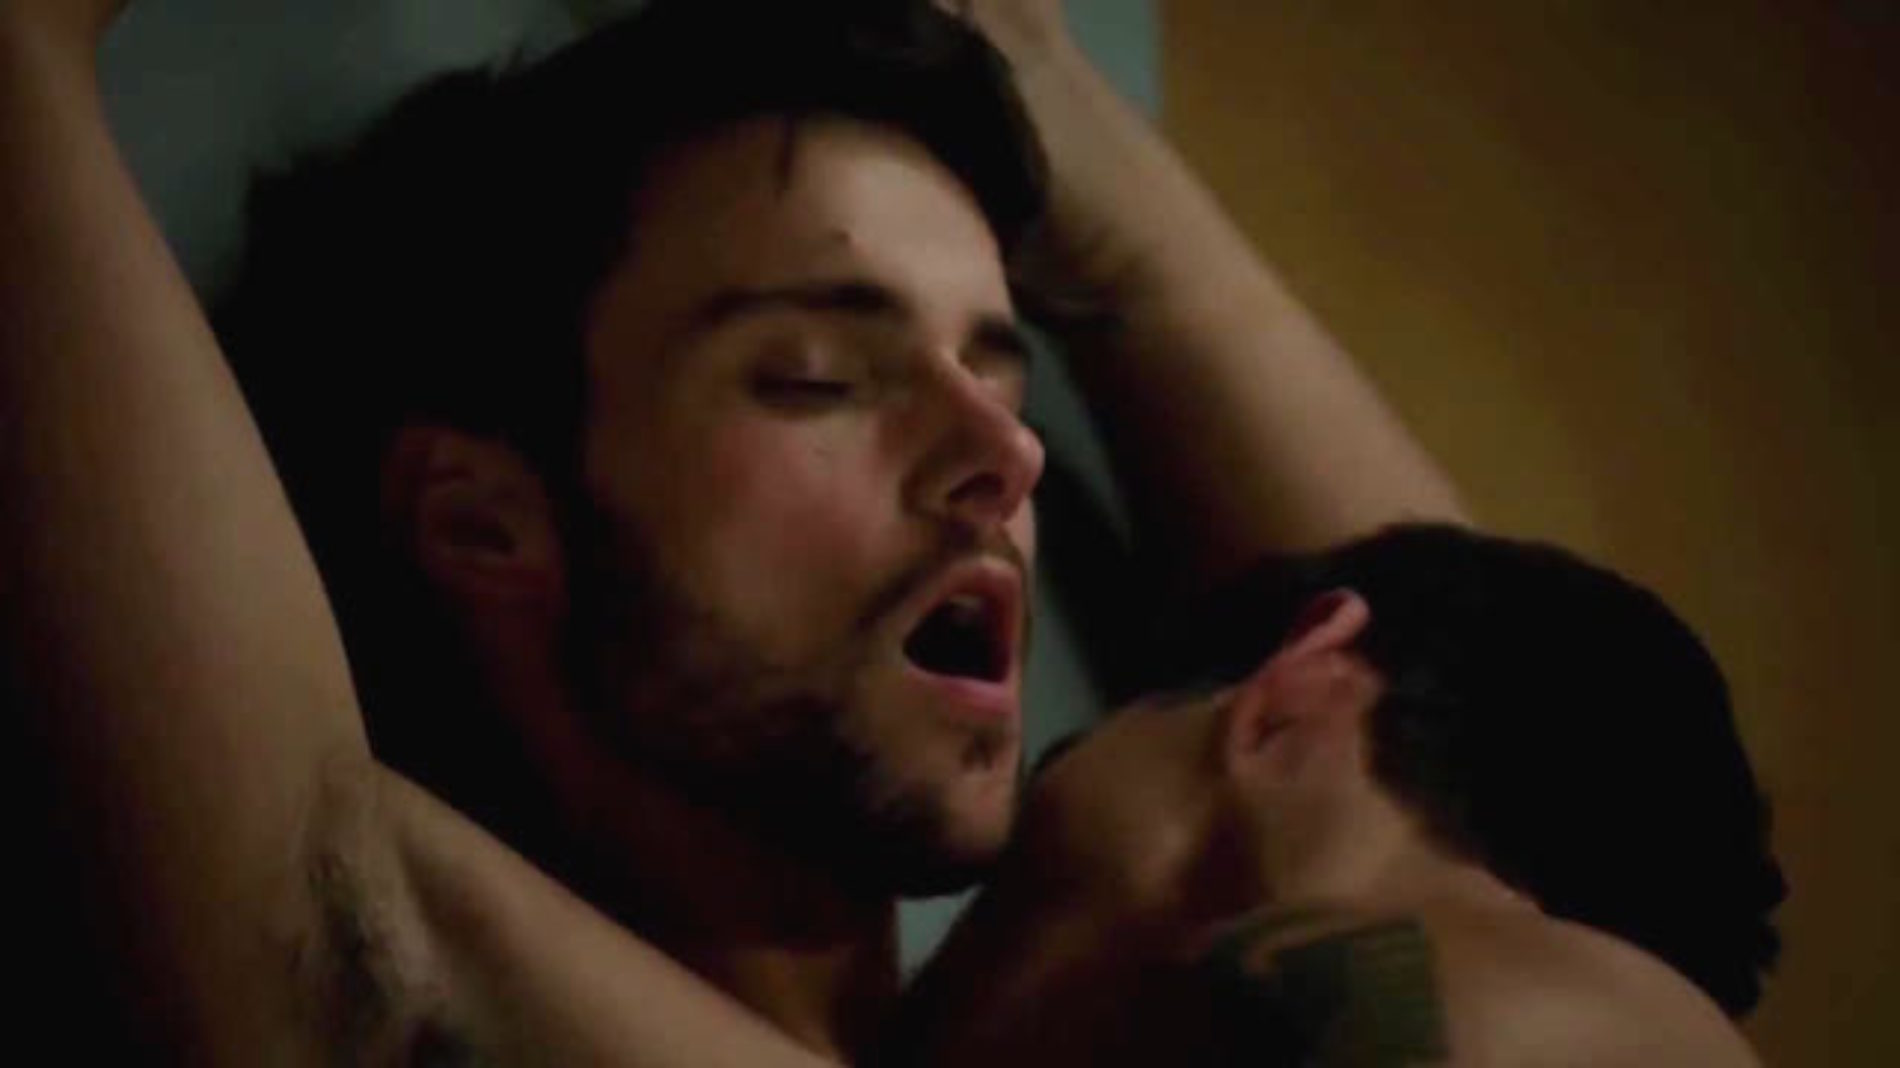 Those TV Gay Sex Scenes…Did They Really Go Too Far?